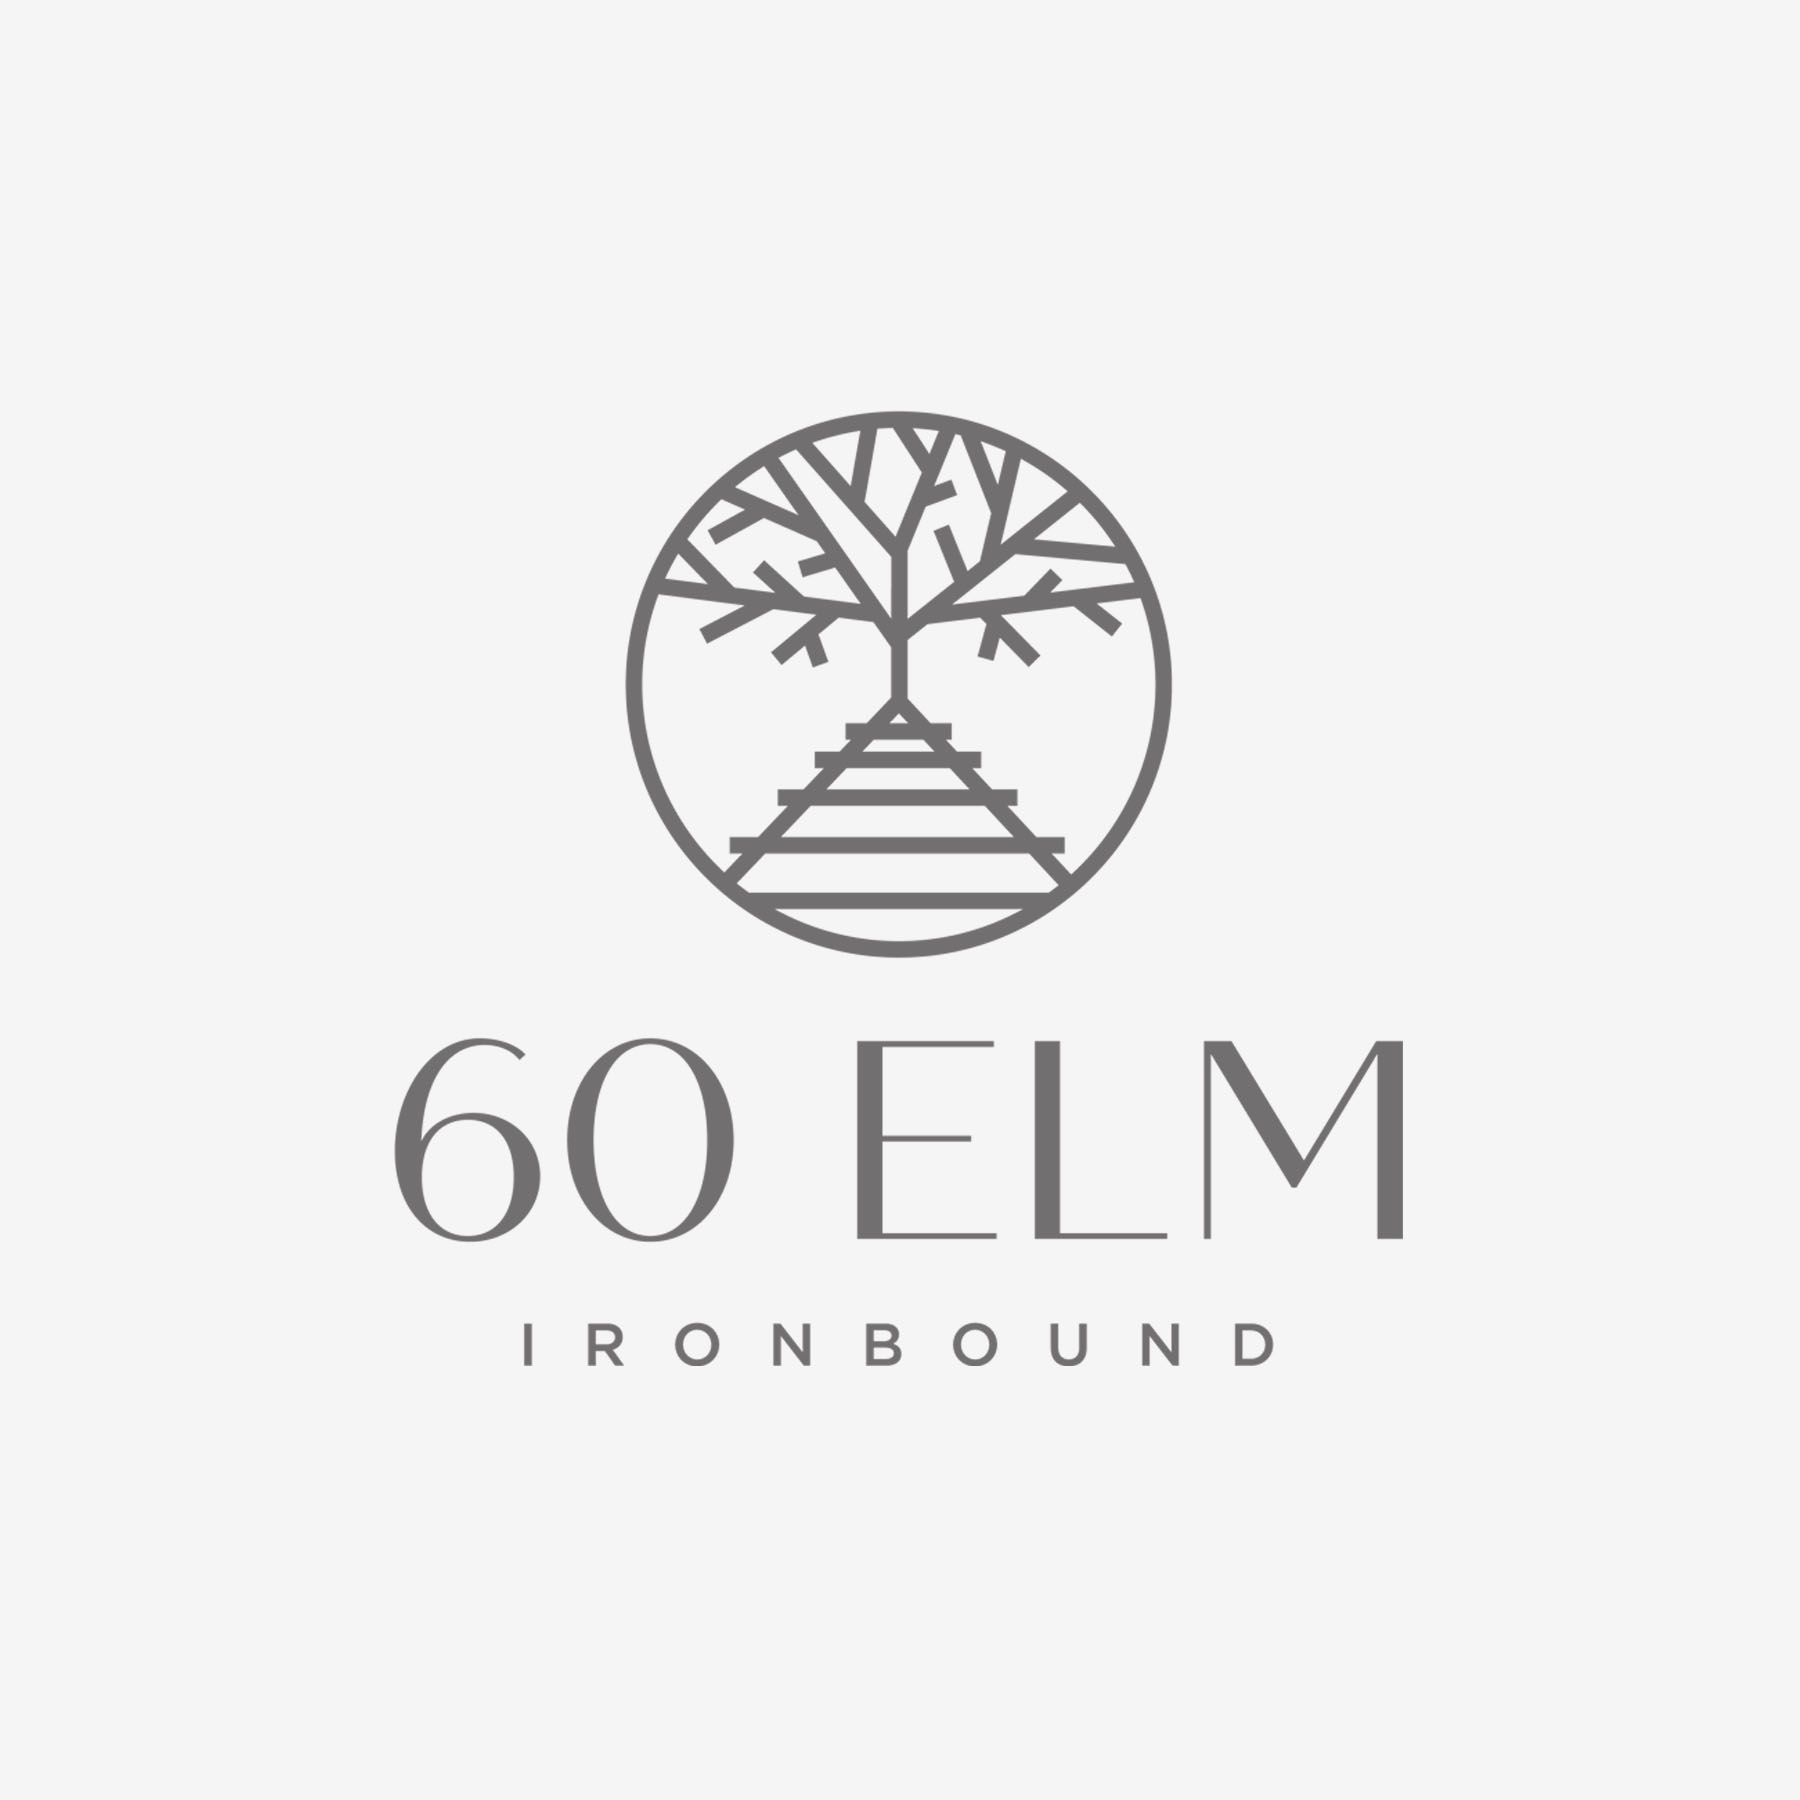 60elm - Real estate developer Tony Gomes (GSMG Group, LLC) envisioned a luxury apartment building in the 'Ironbound section' of Newark, NJ. We designed the branding for his logo and multiple signage applications to incorporate the ever-present railroad system that makes the Ironbound district so special.